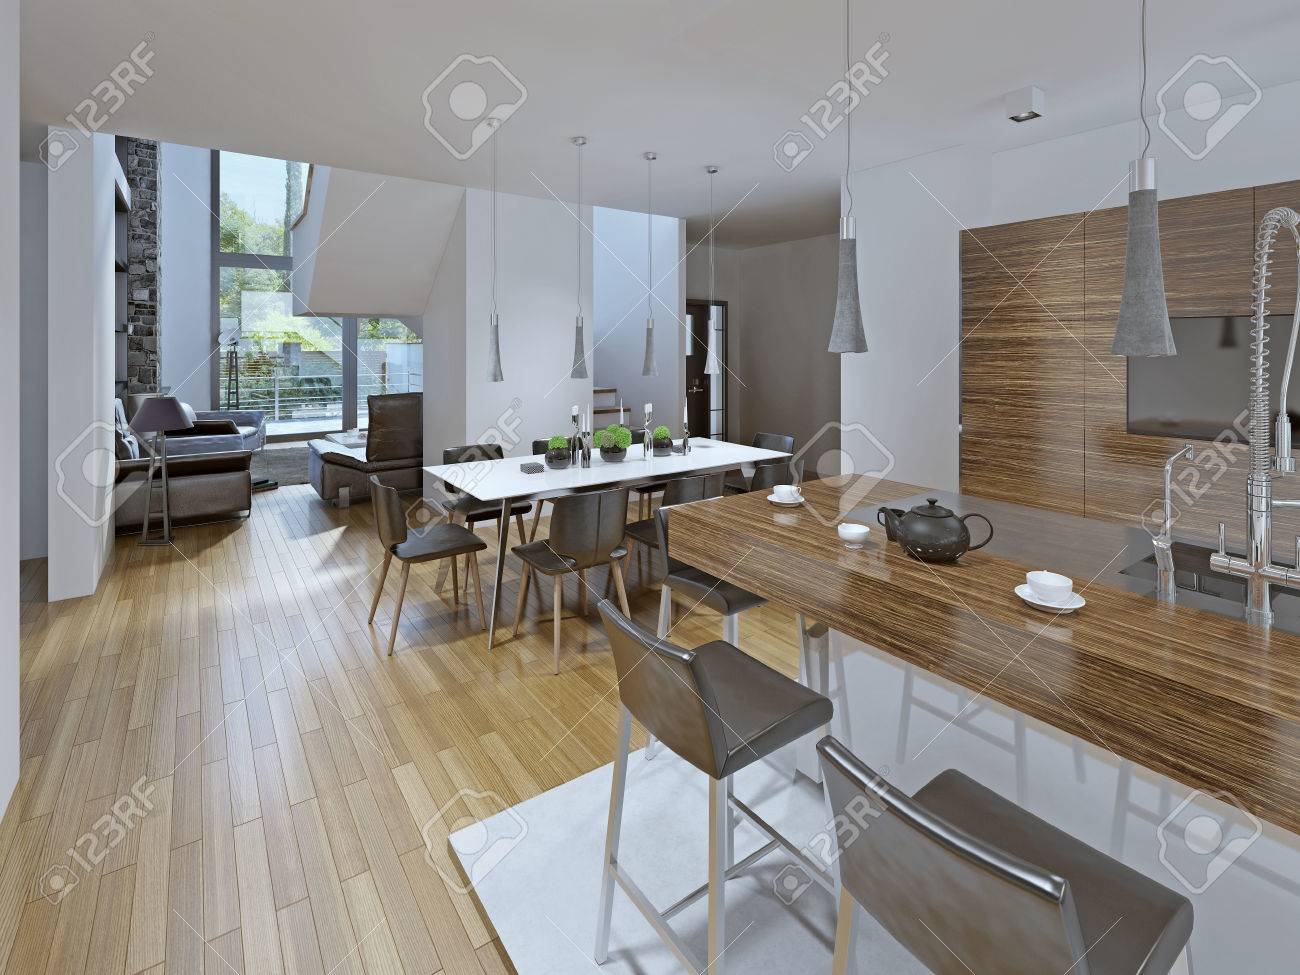 Kitchen With Dining Area Combined Room The Contrast Of White And